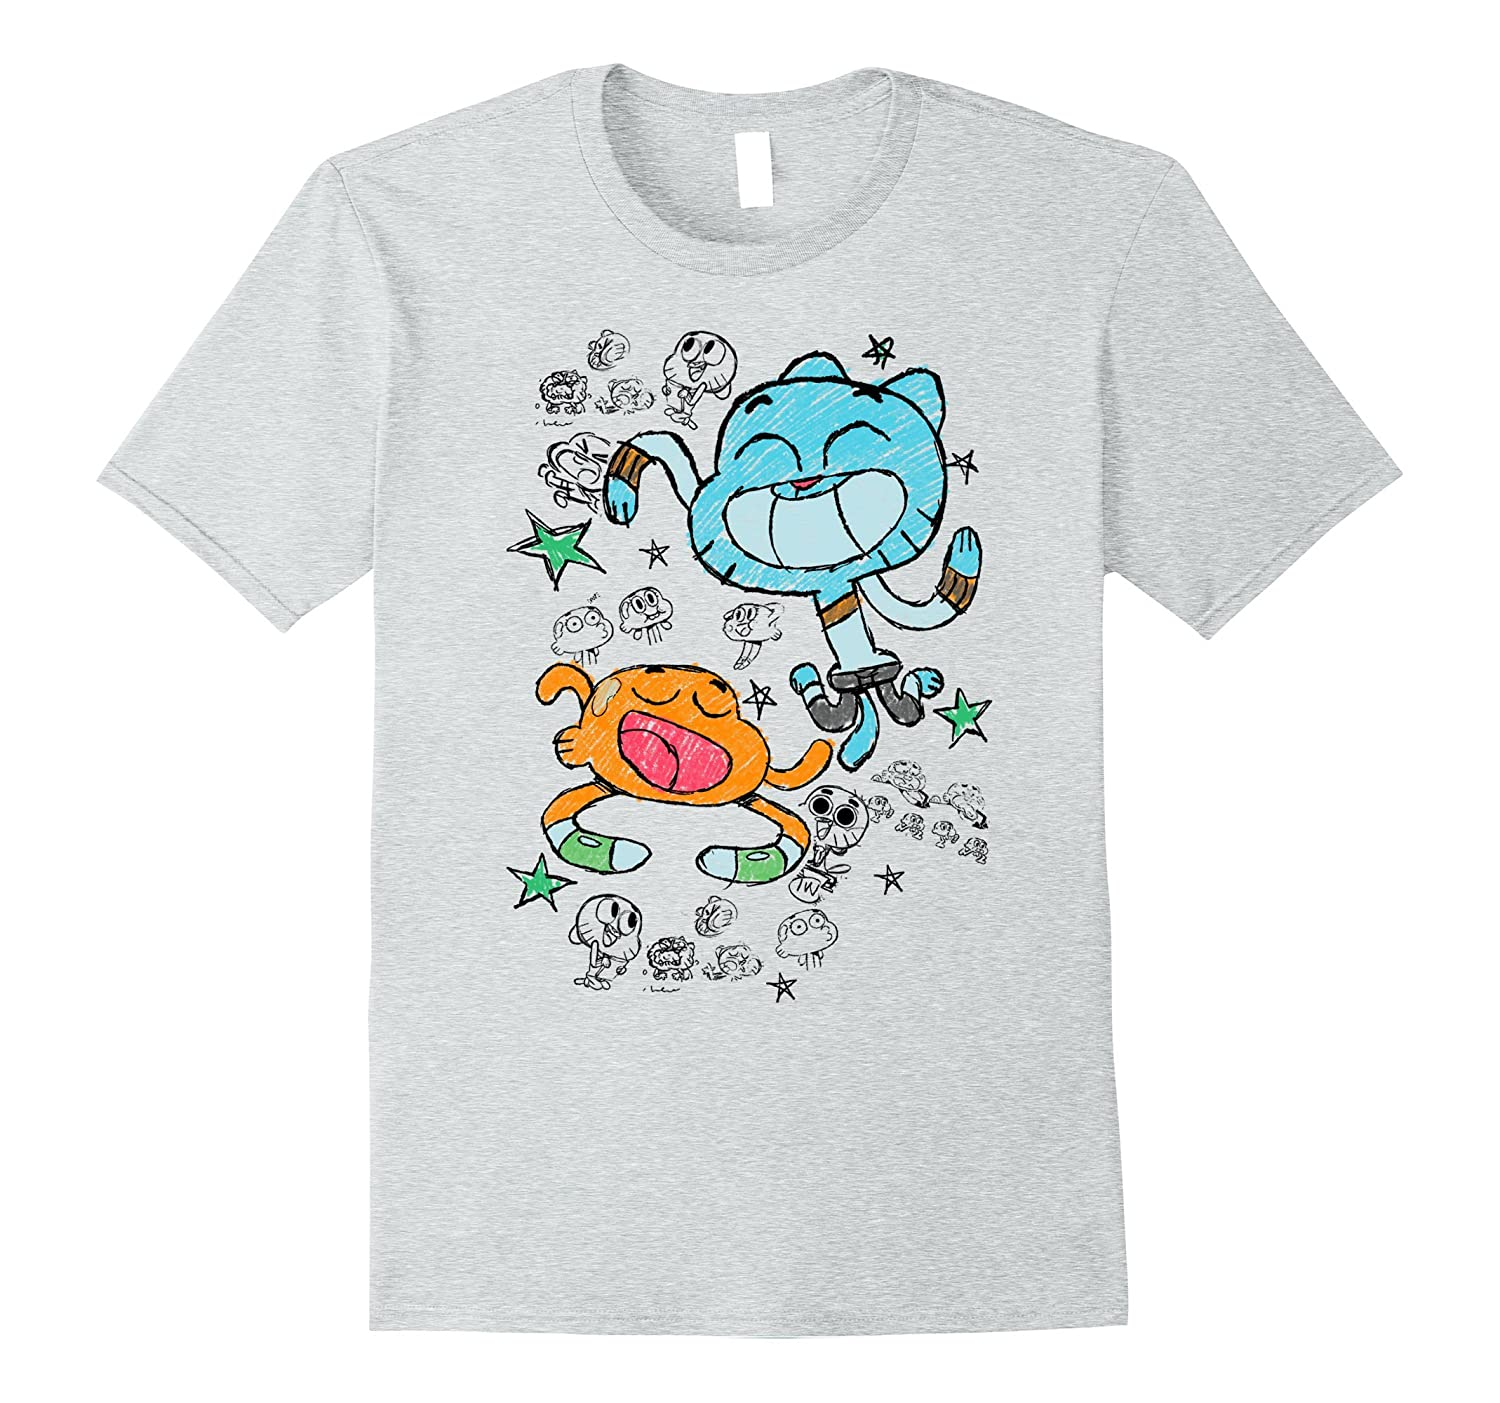 cfa3af107 CN Gumball Darwin Watterson Scribble Drawing Graphic T-Shirt-RT ...